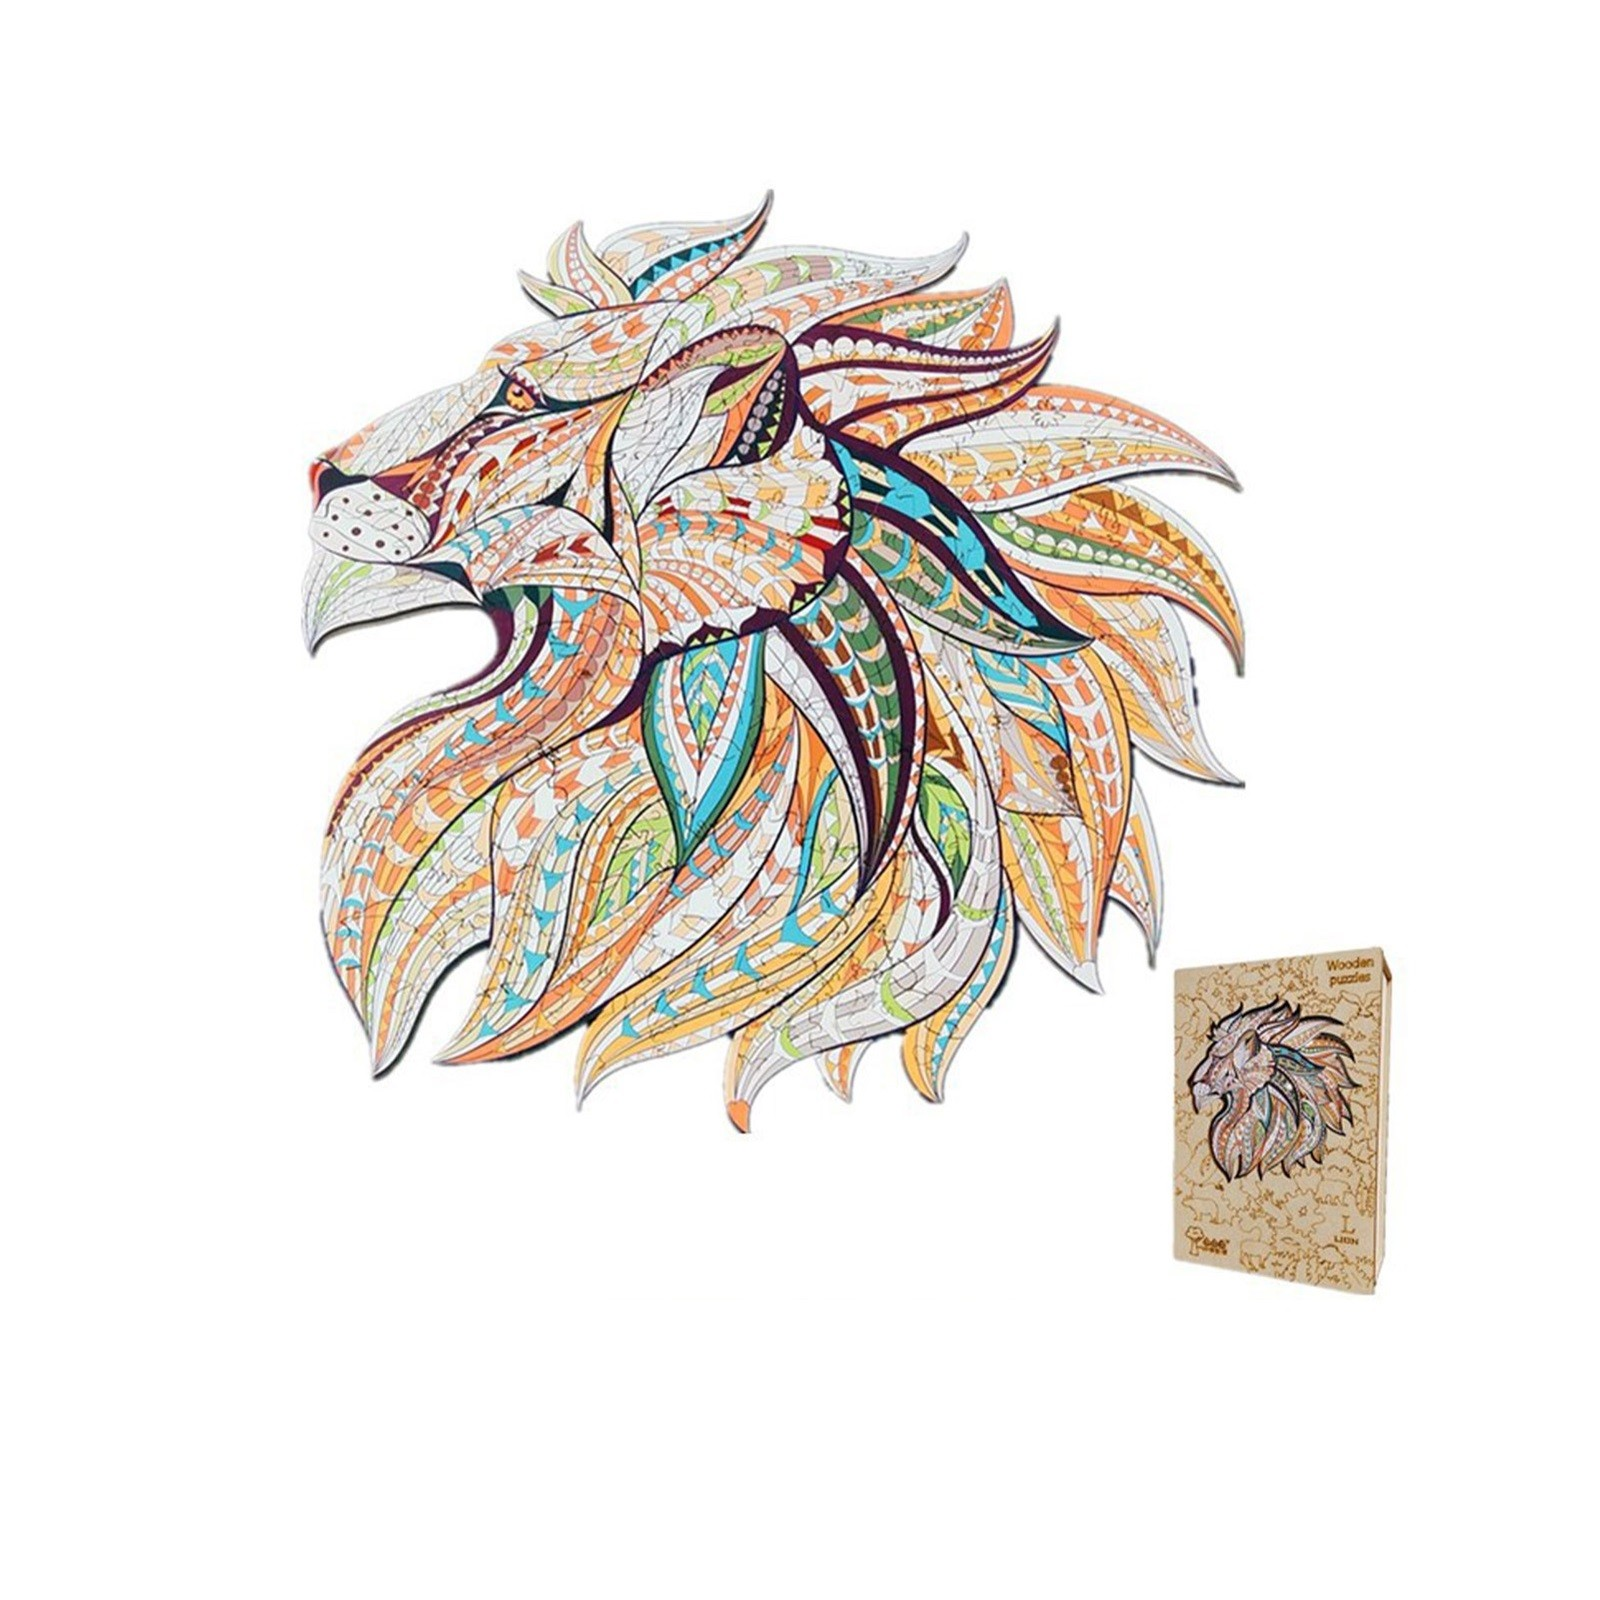 Wooden Puzzle Mysterious Animal Shaped Christmas Gift Wooden Jigsaw Puzzle